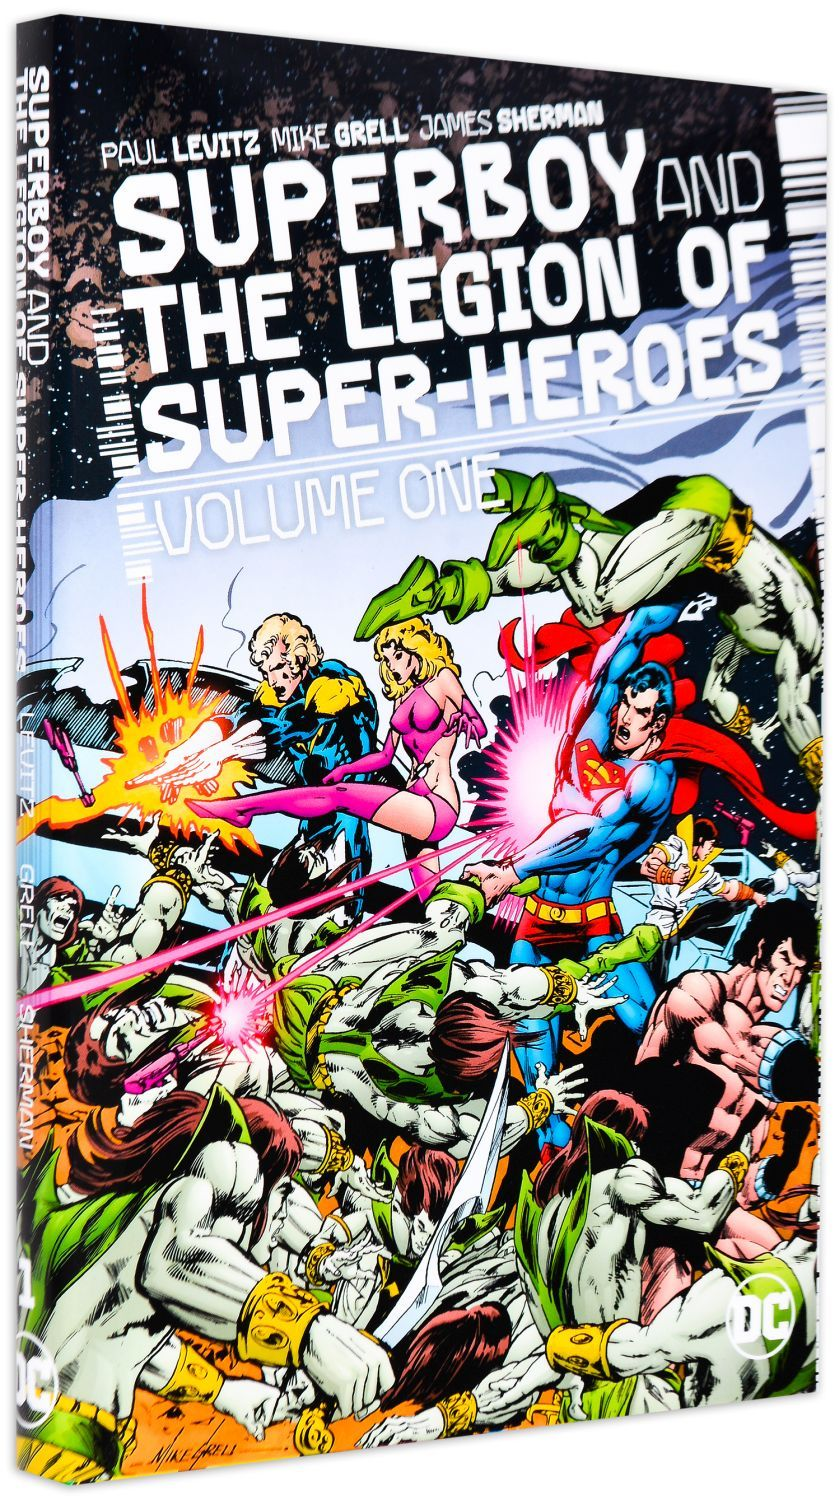 Superboy and the Legion of Super-Heroes Vol. 1 - 1